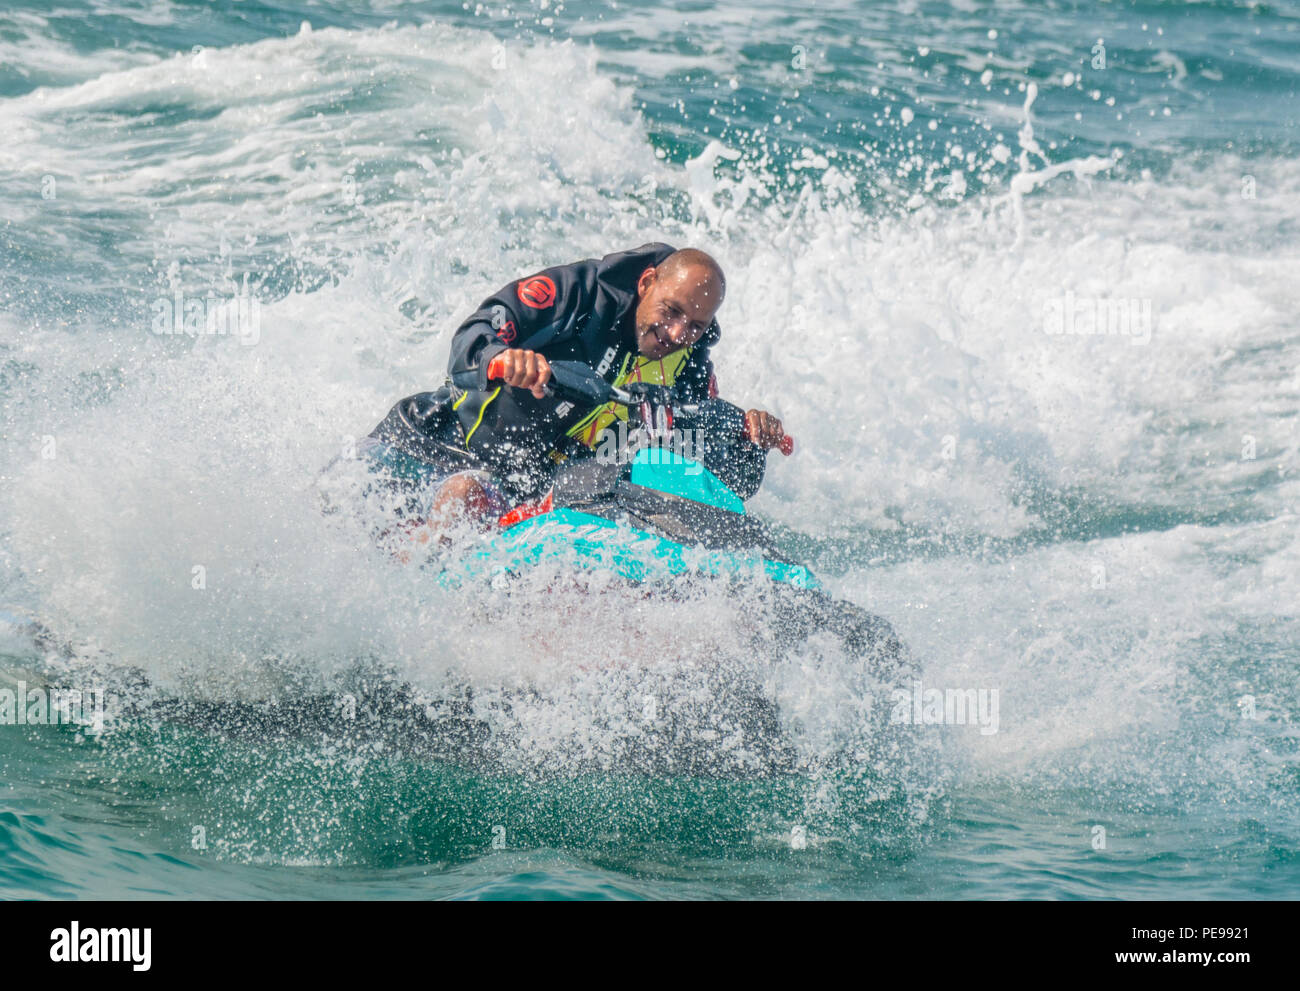 Man riding a jet ski on the sea in Summer in the UK. Water sport.Jet ski. Jet skiing. - Stock Image